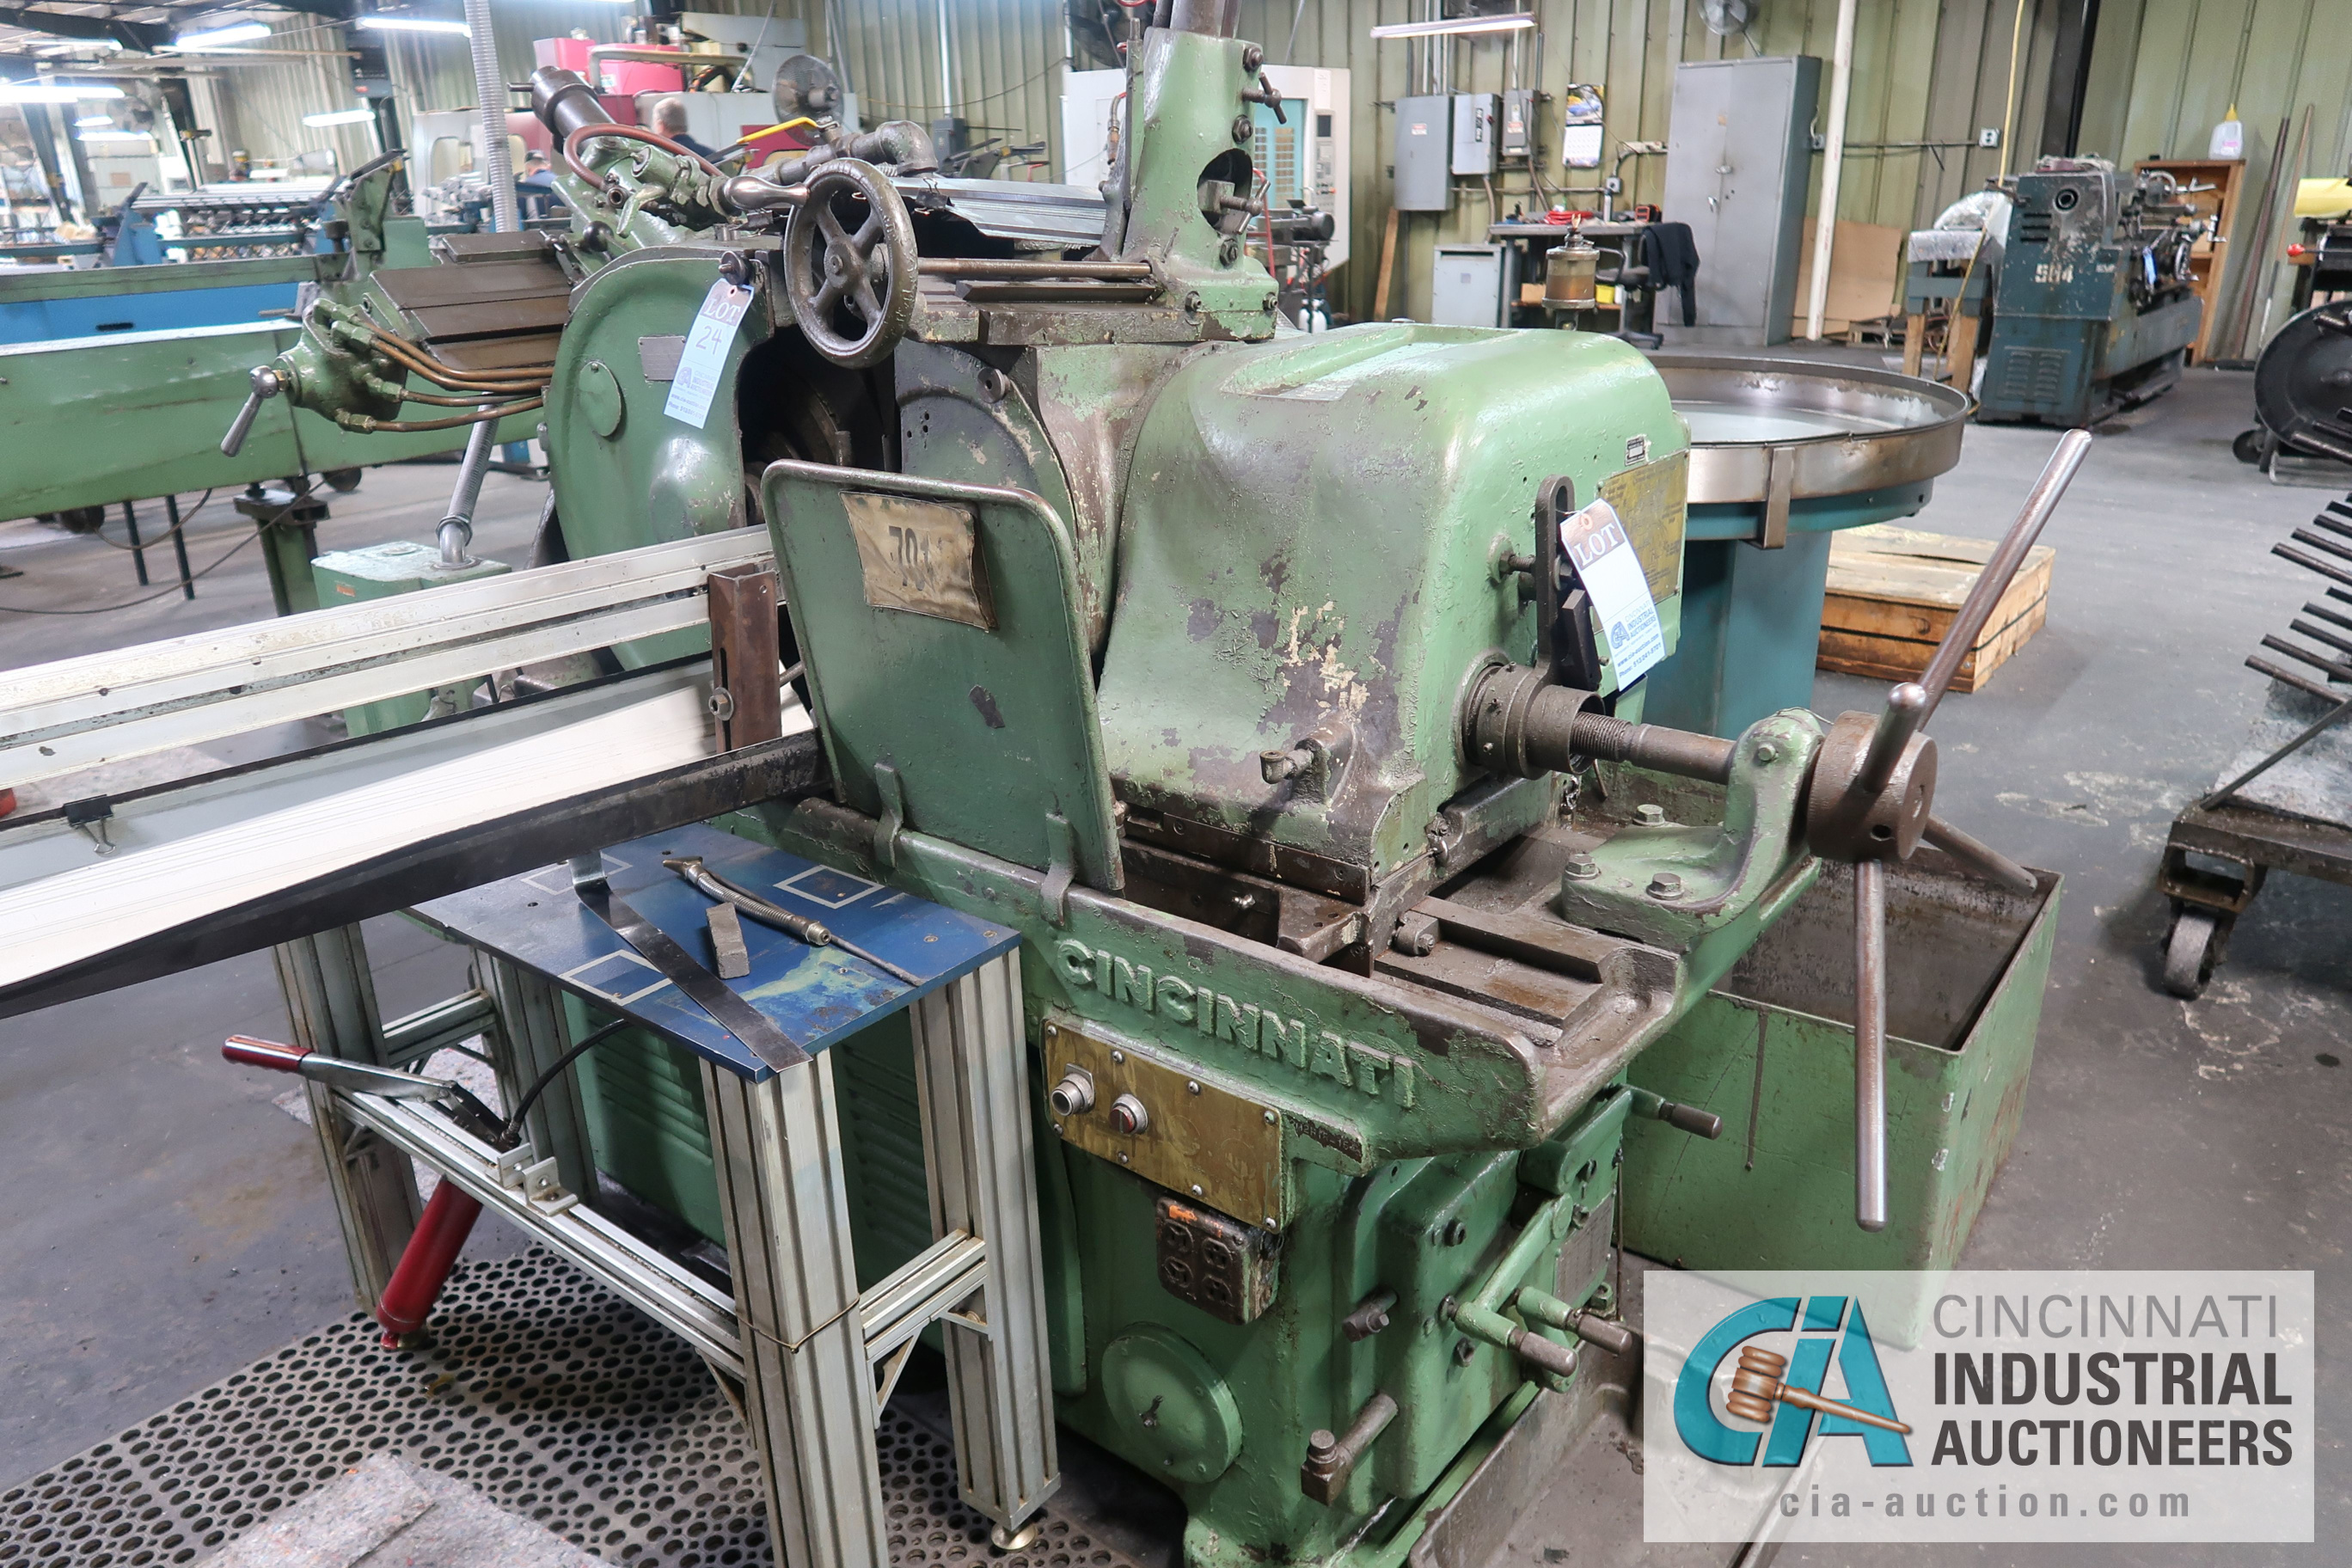 Lot 24 - CINCINNATI MODEL 2 CENTERLESS GRINDER; S/N 2M2H1R-154 (NEW 1966) WITH INFEED AND OUTFEED CONVEYOR